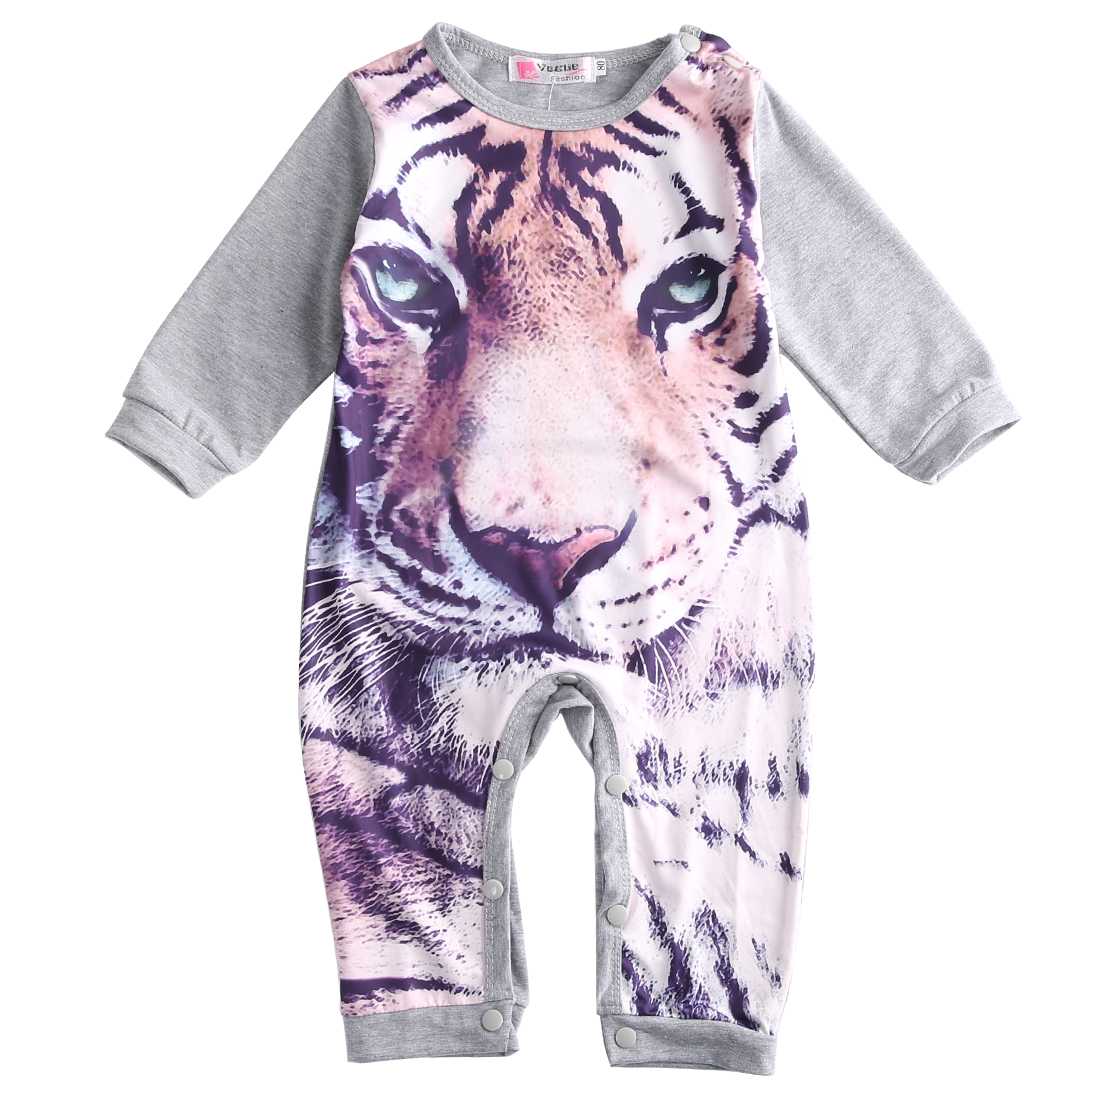 2018 Newborn Baby Girl Clothes Jumpsuit Romper leg Warmers+headband Outfit Hot New Harmonious Colors Clothing Sets Girls' Baby Clothing